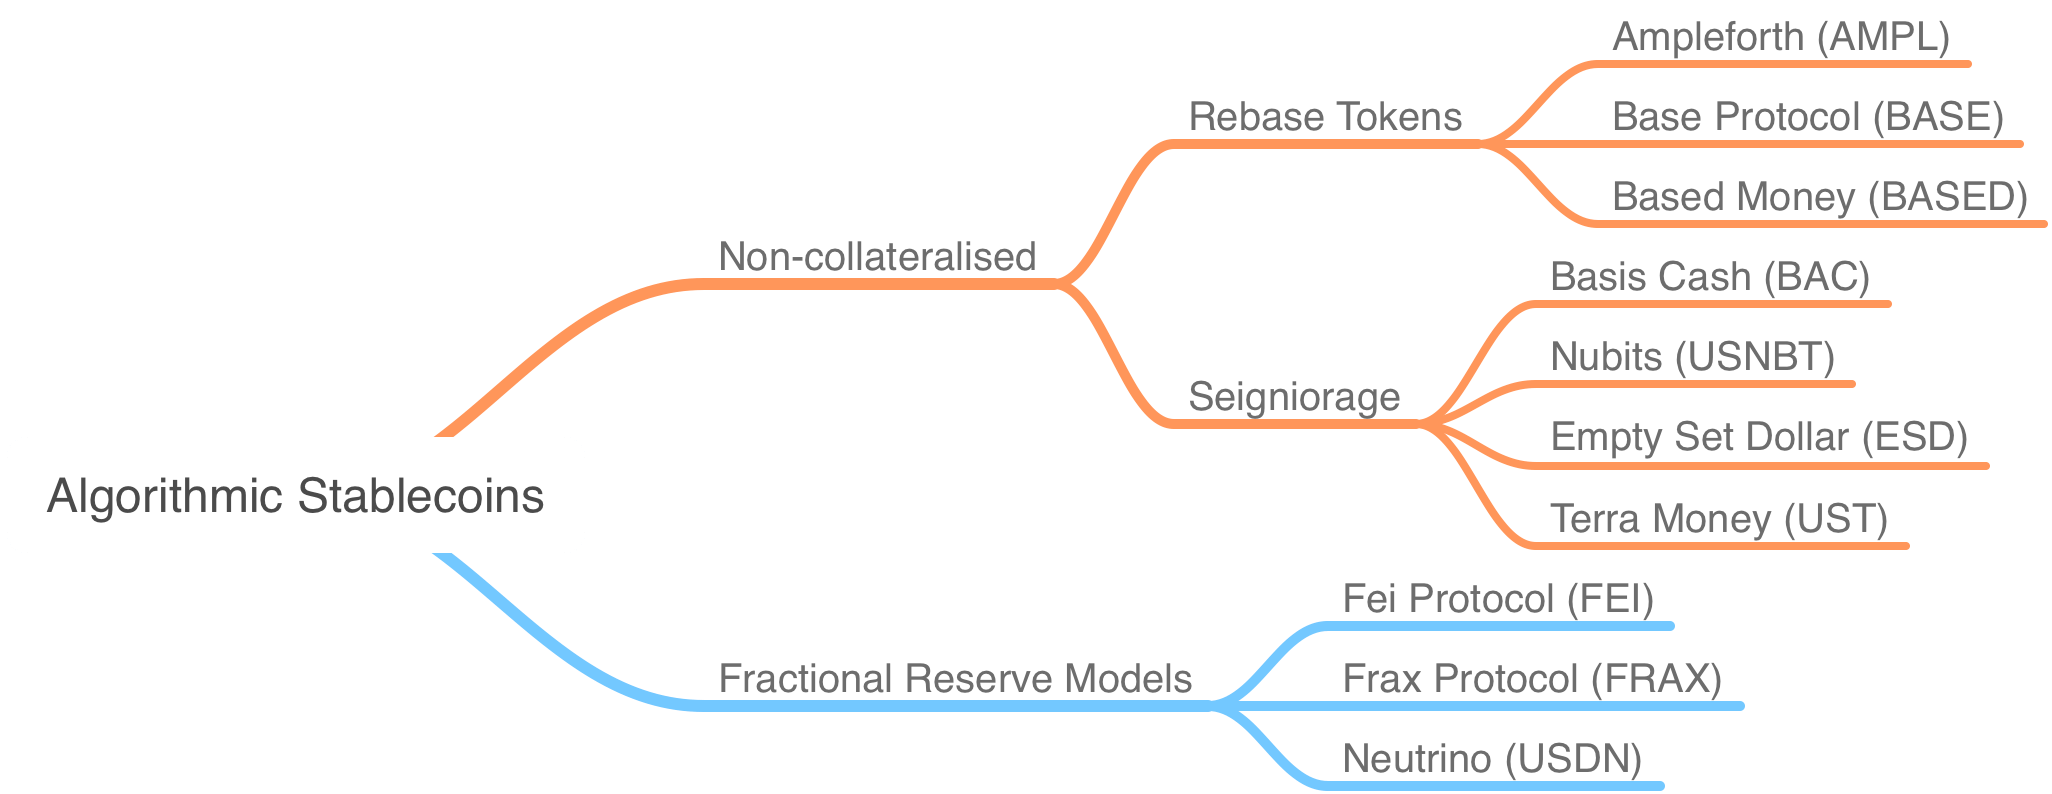 Algorithmic Stablecoins Categorisation and Examples